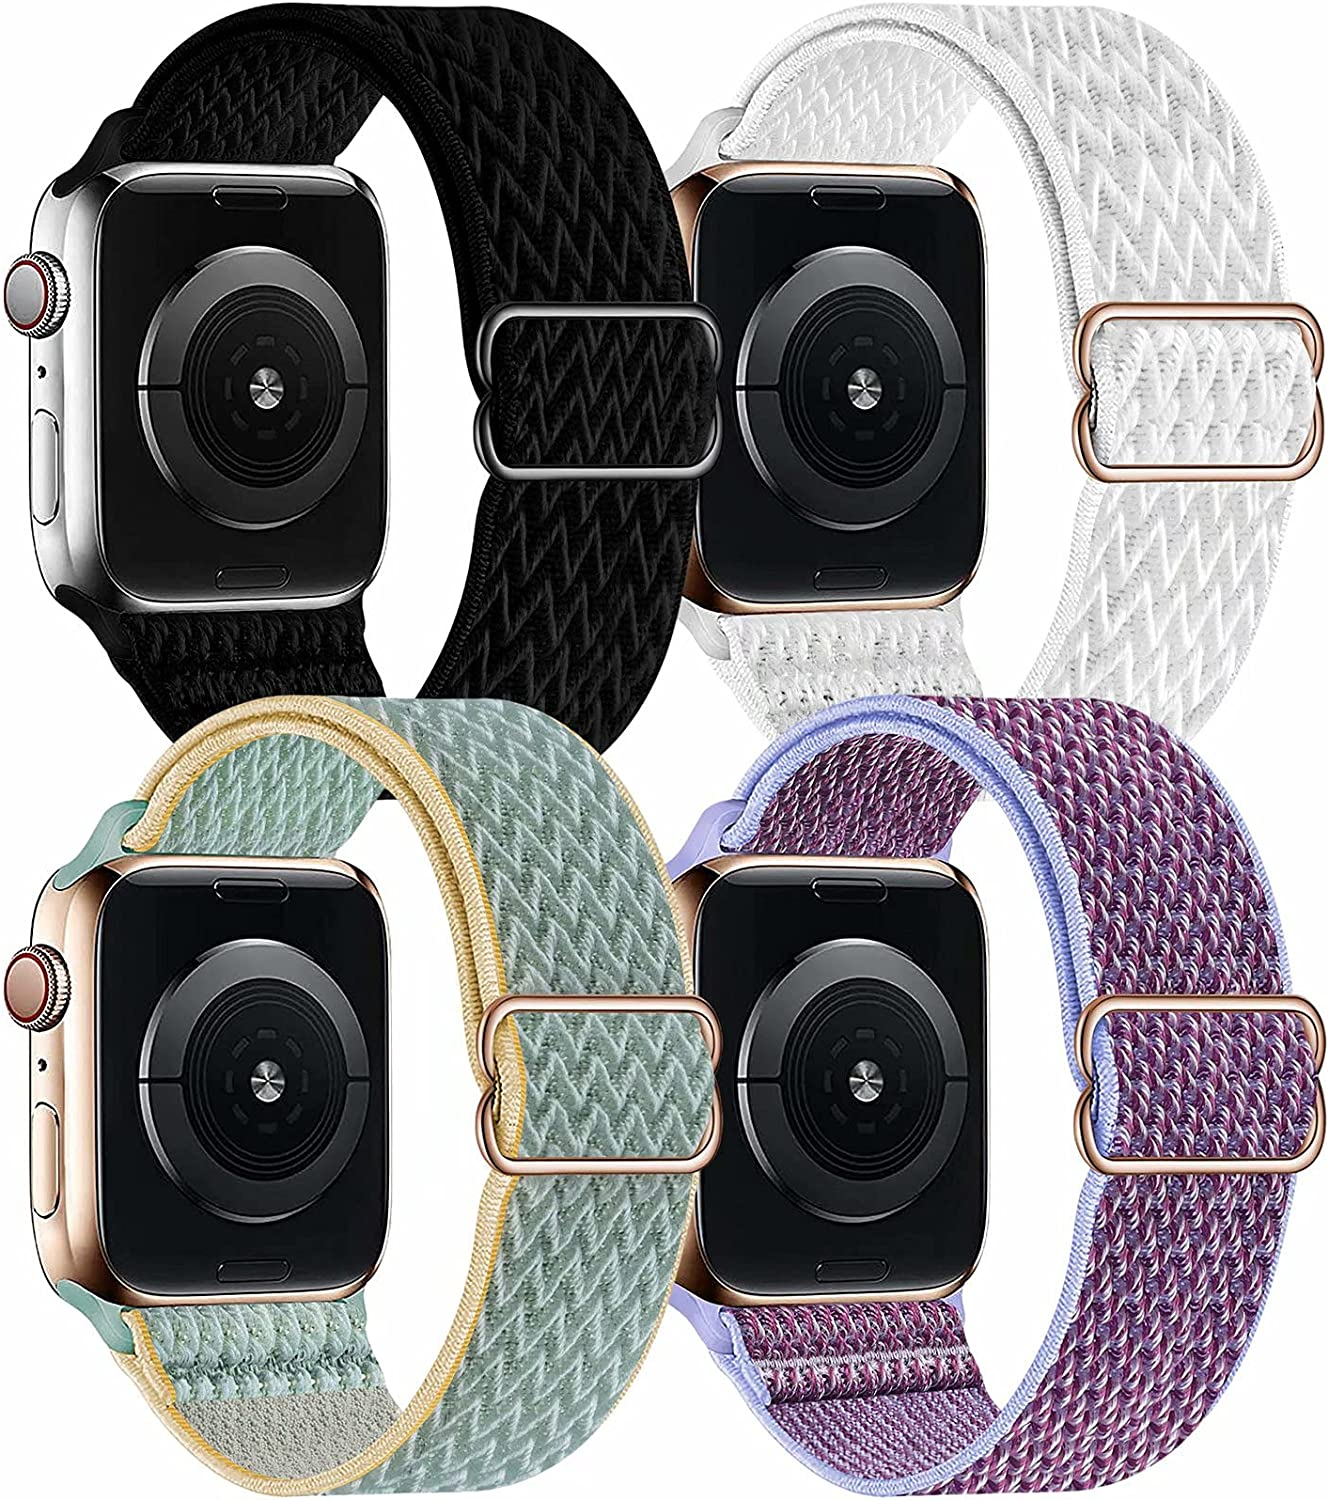 OHCBOOGIE 4 Pack Nylon Solo Loop Compatible with Apple Watch Bands,Stretch Adjustable Soft Sport Breathable Straps for Iwatch Series 6/5/4/3/2/1/SE,Black/White/Sunshine/Lilac,38/40mm